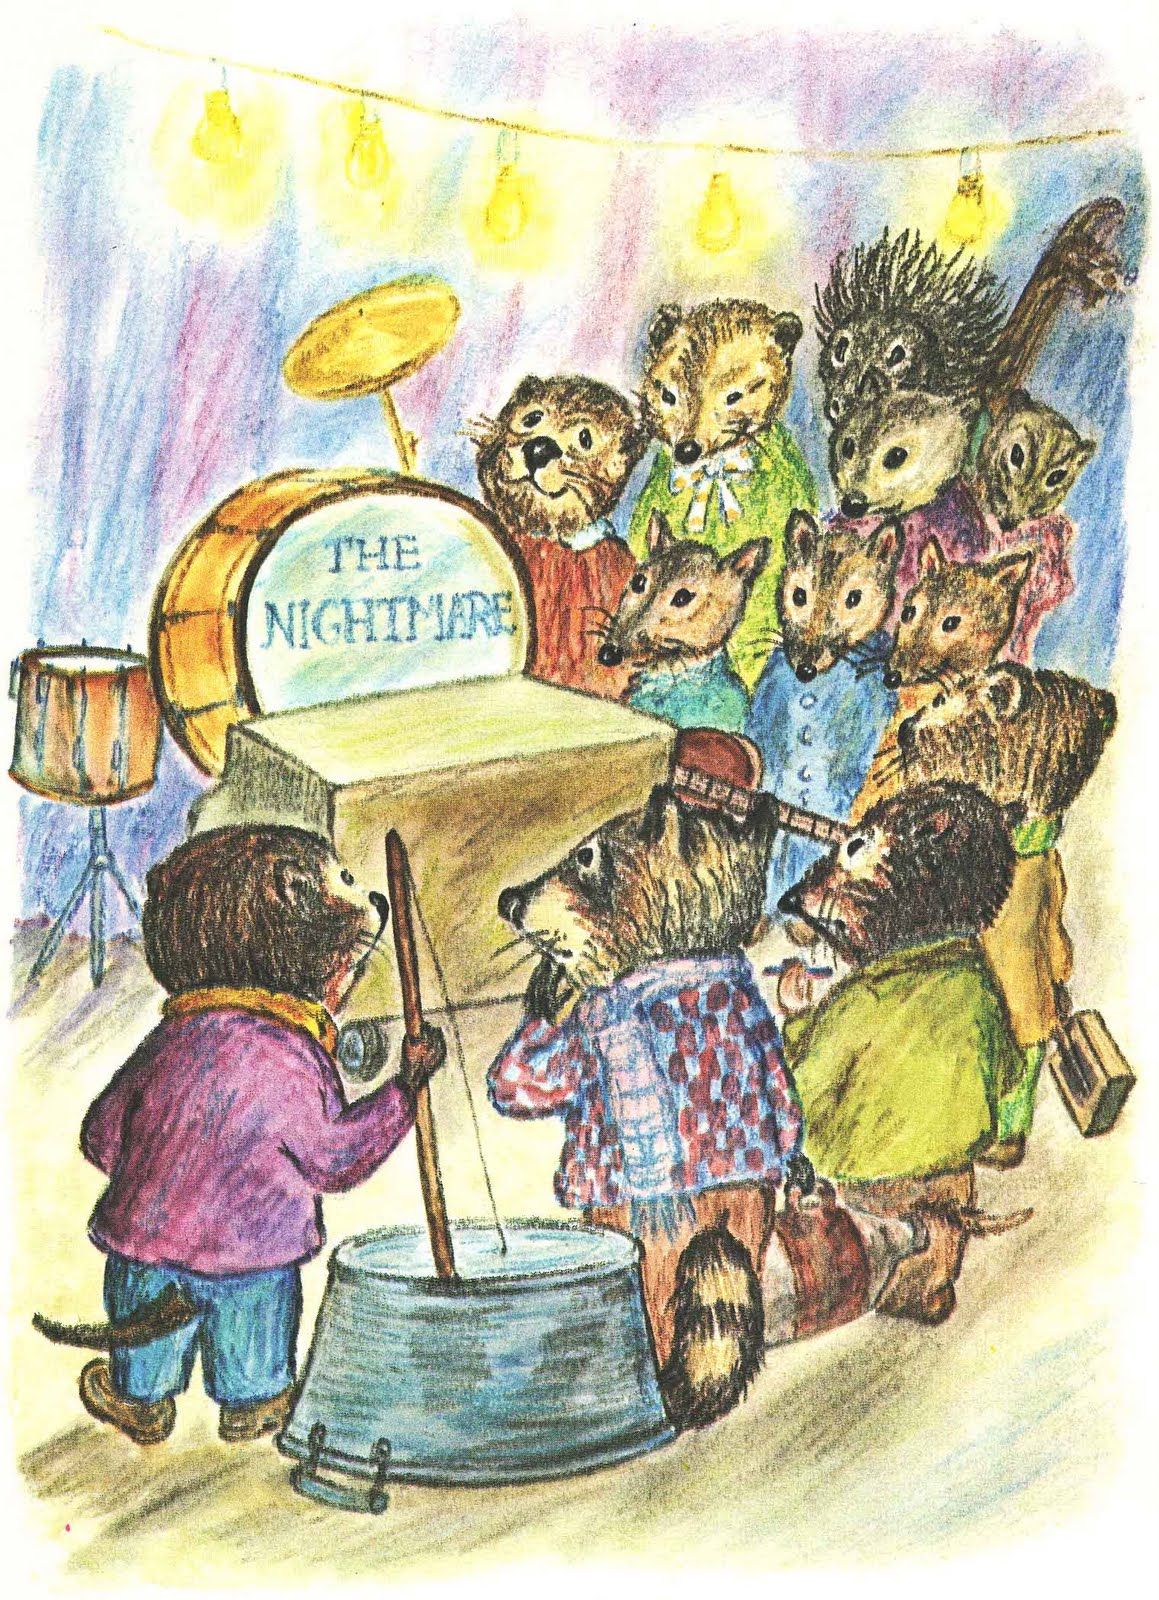 Vintage Kids' Books My Kid Loves: Emmet Otter's Jug-Band Christmas